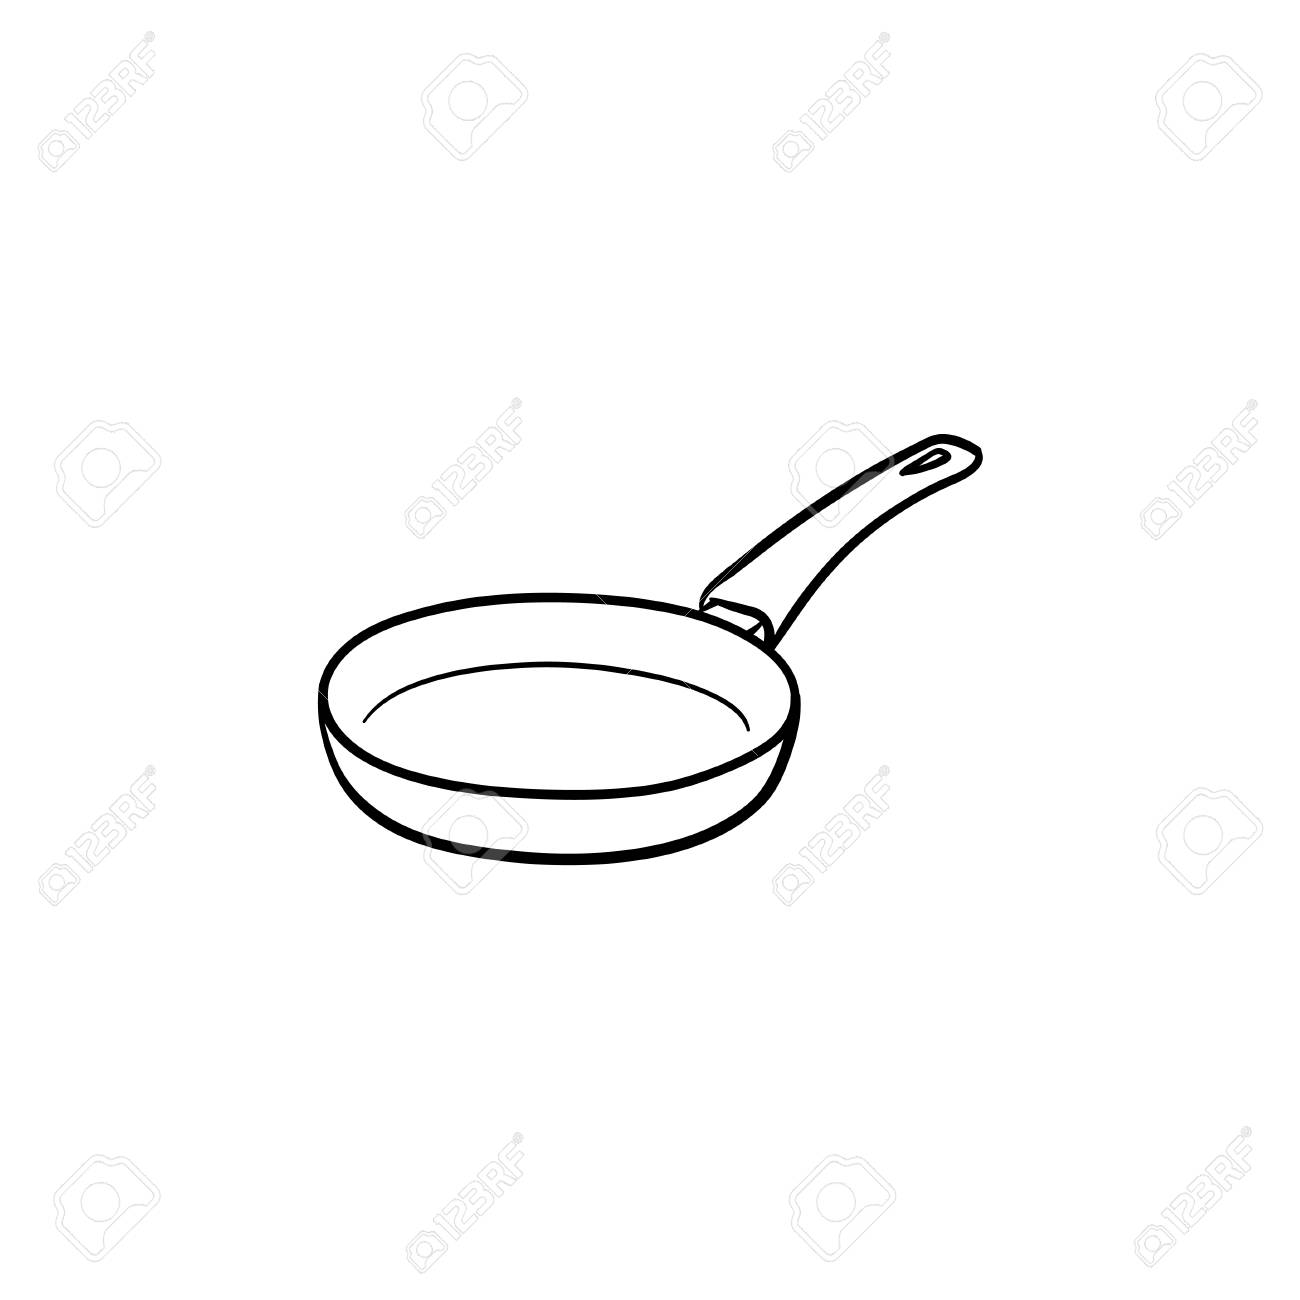 Outline Of A Pan Wiring Diagrams And Schematics Figure 11 Diagram Car39s Electrical Frying Hand Drawn Doodle Icon For Food Rh 123rf Com